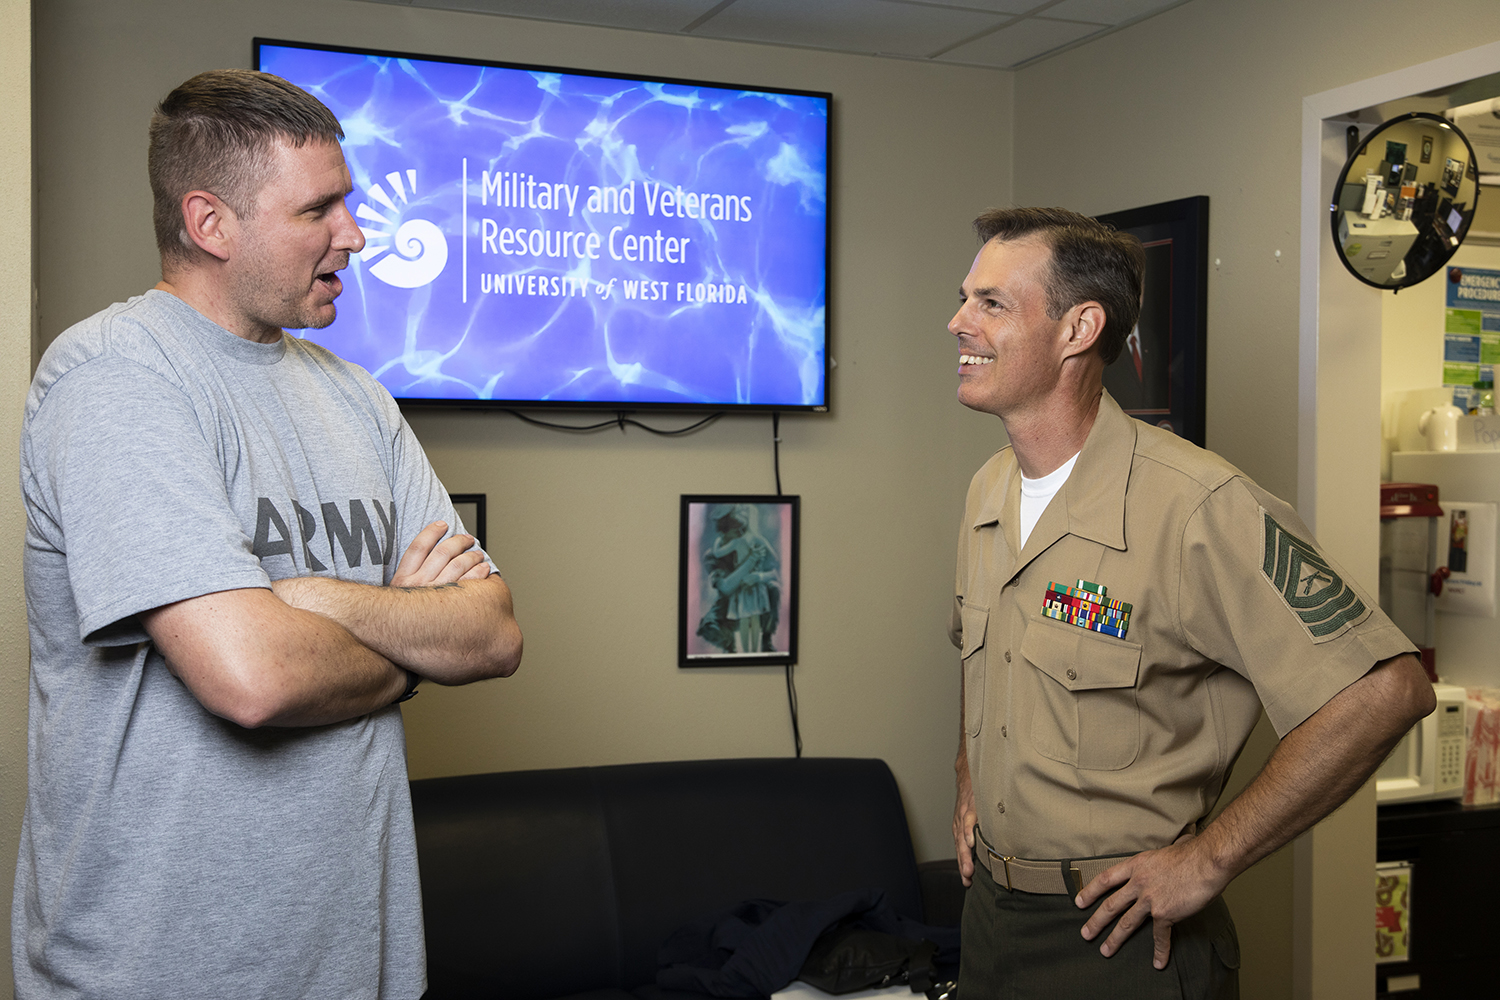 Military and Veterans Resource Center at UWF